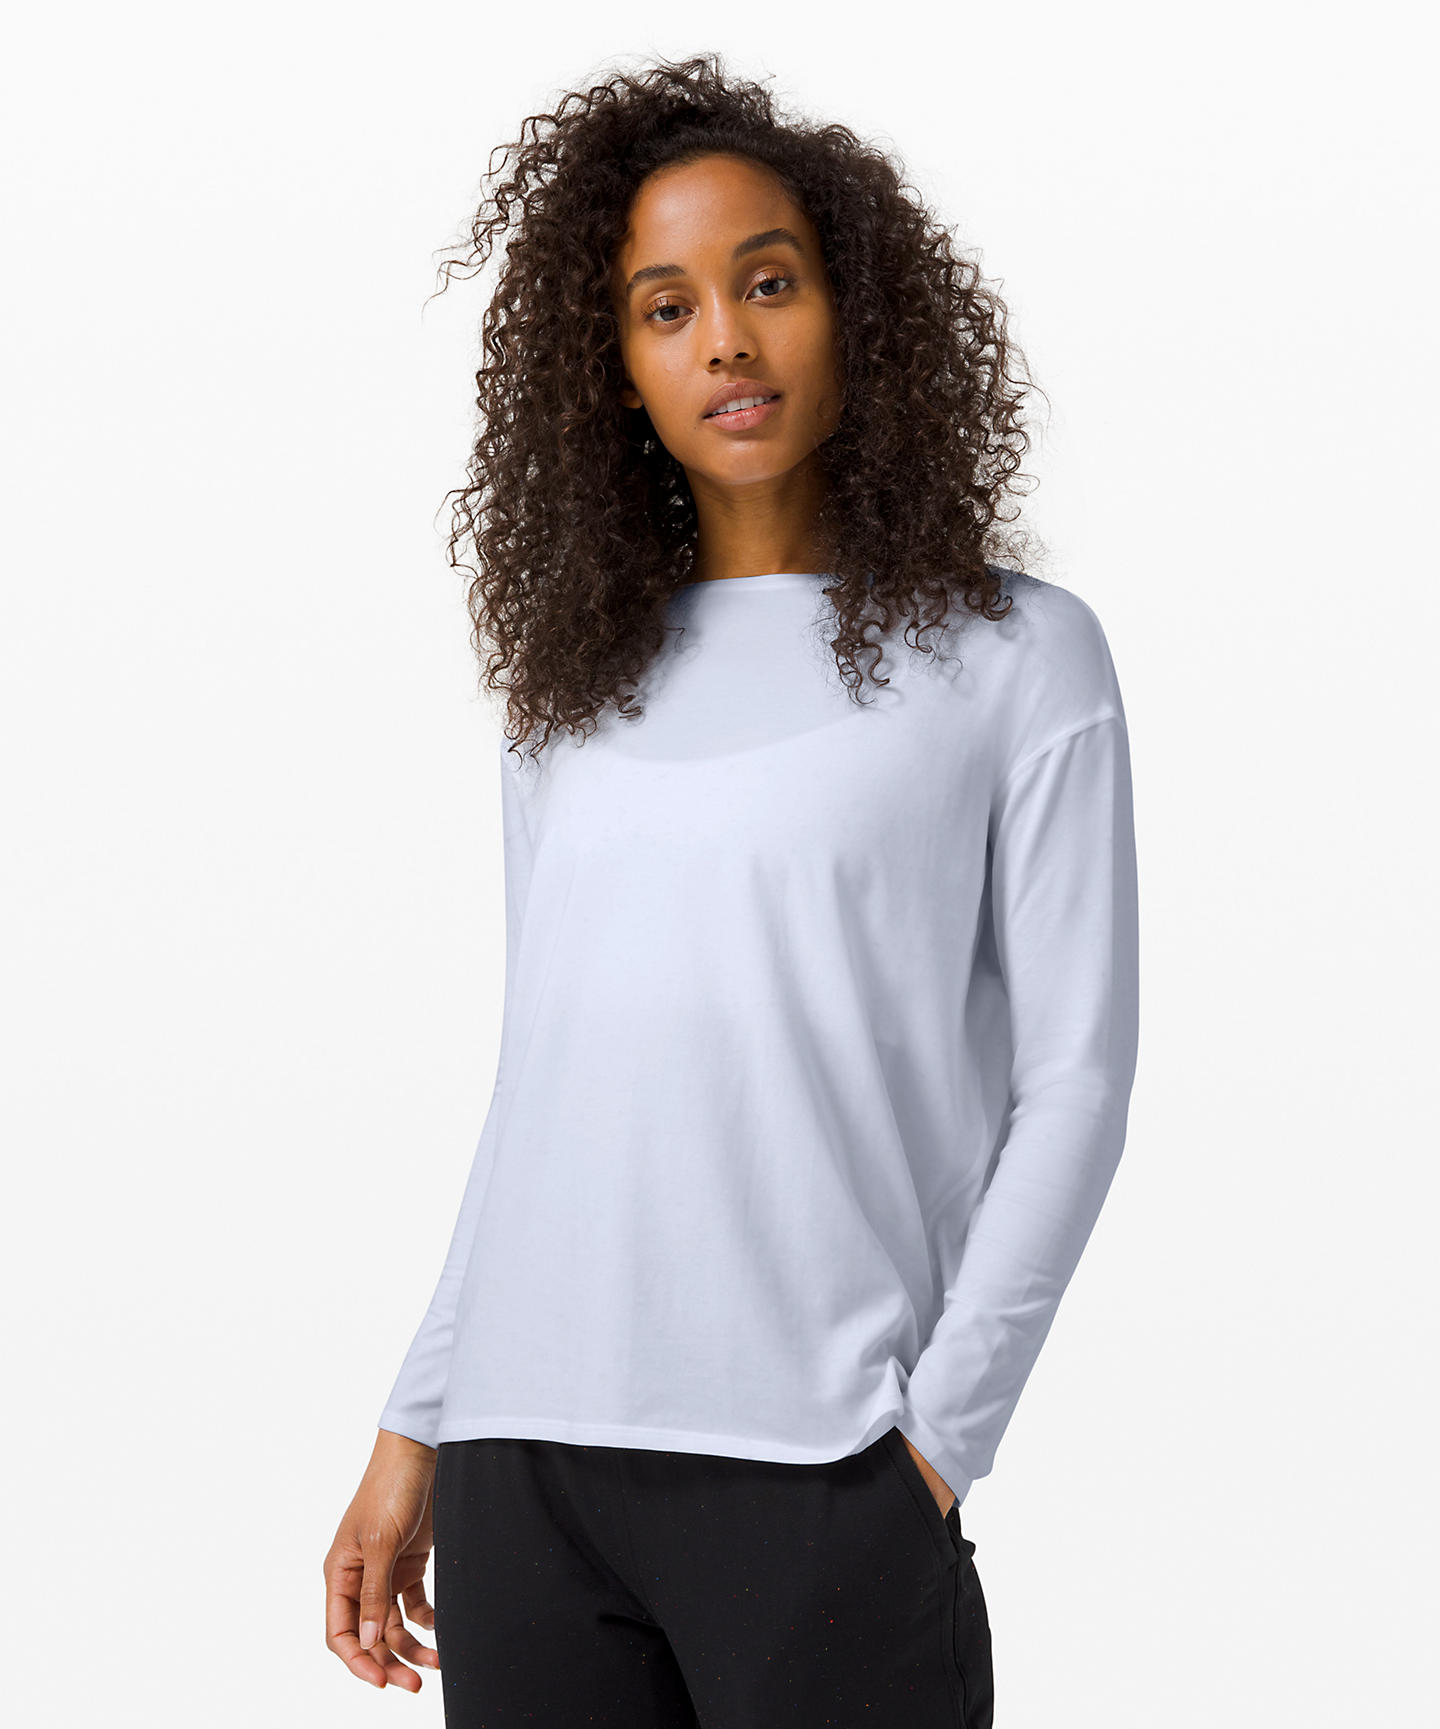 LA Back In Action Long Sleeve, Lululemon Upload